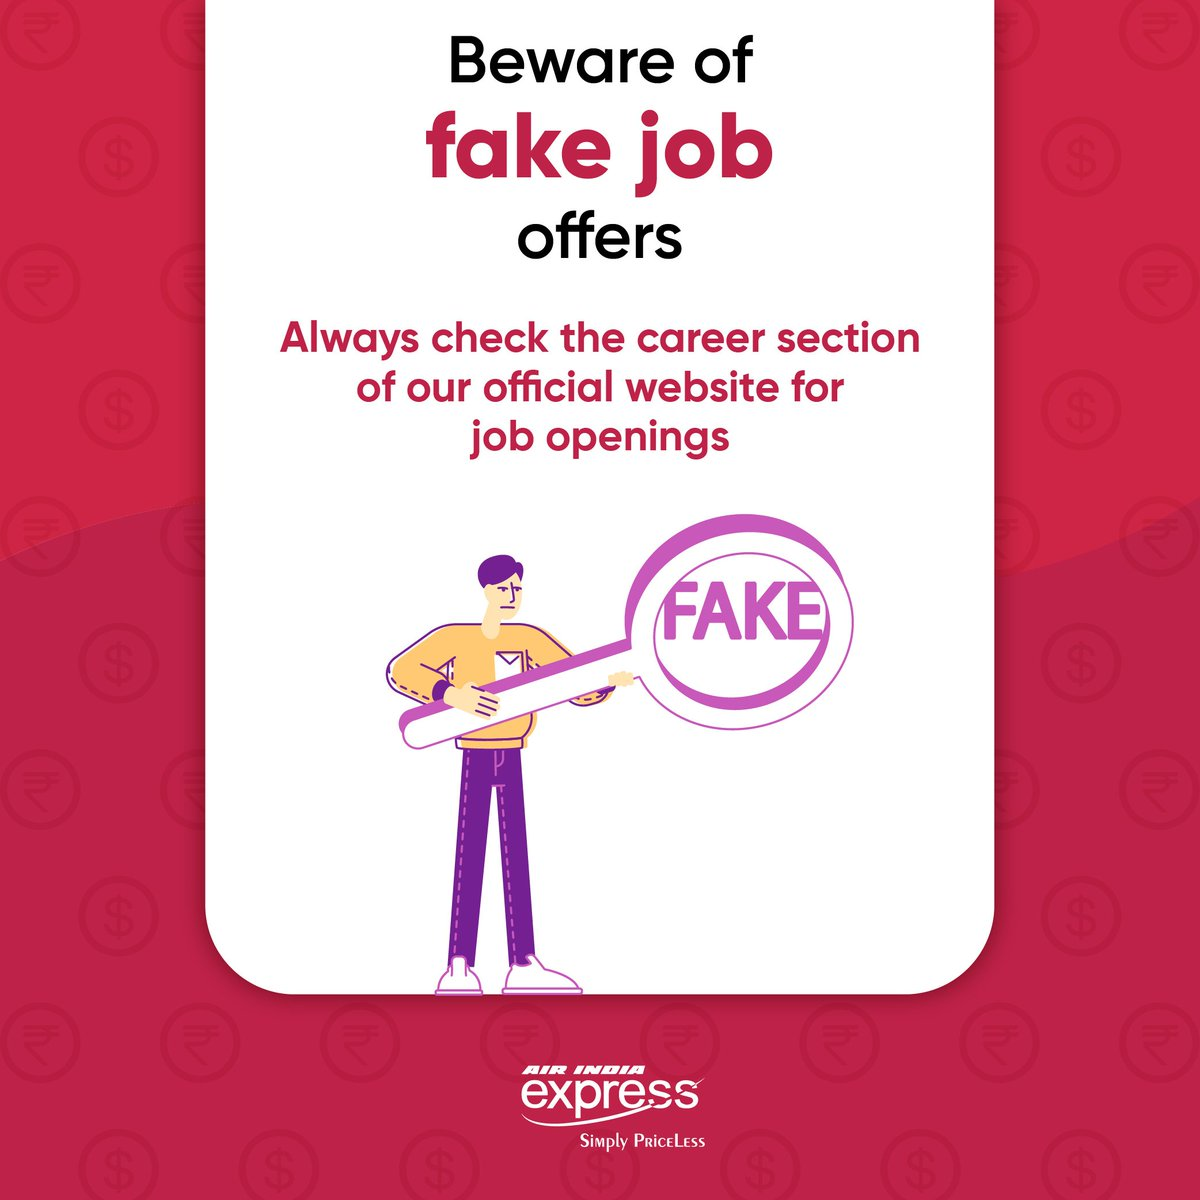 #FlyWithIX : Caution ⚠️  Beware of fake job offers. They can be scams. Our job openings are posted on the official website